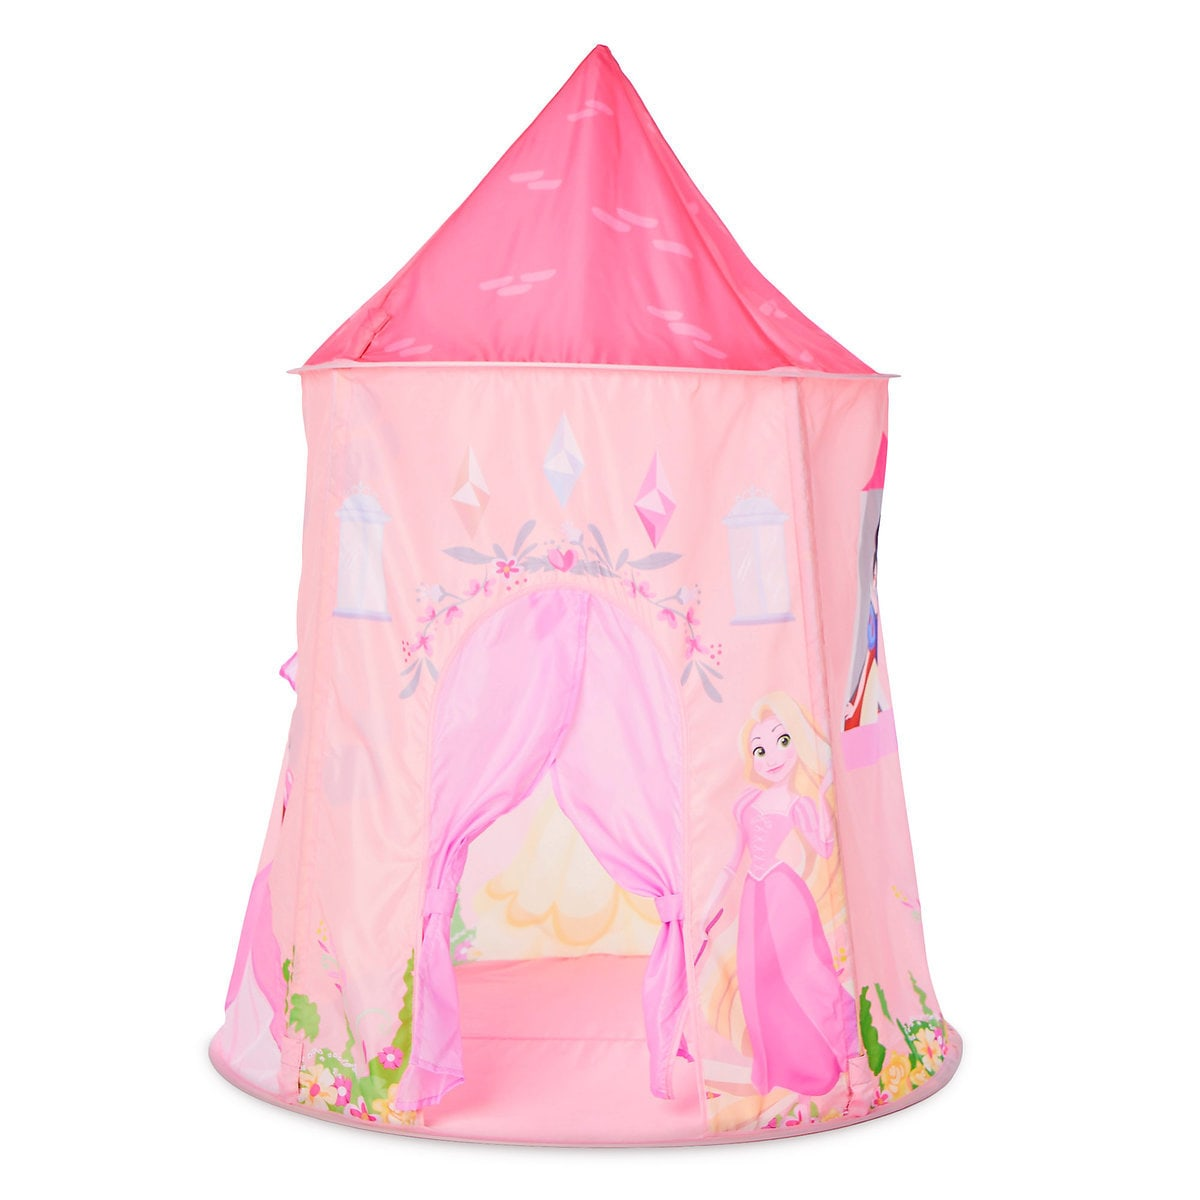 aff2e025c3fc Product Image of Disney Princess Castle Play Tent for Kids # 1